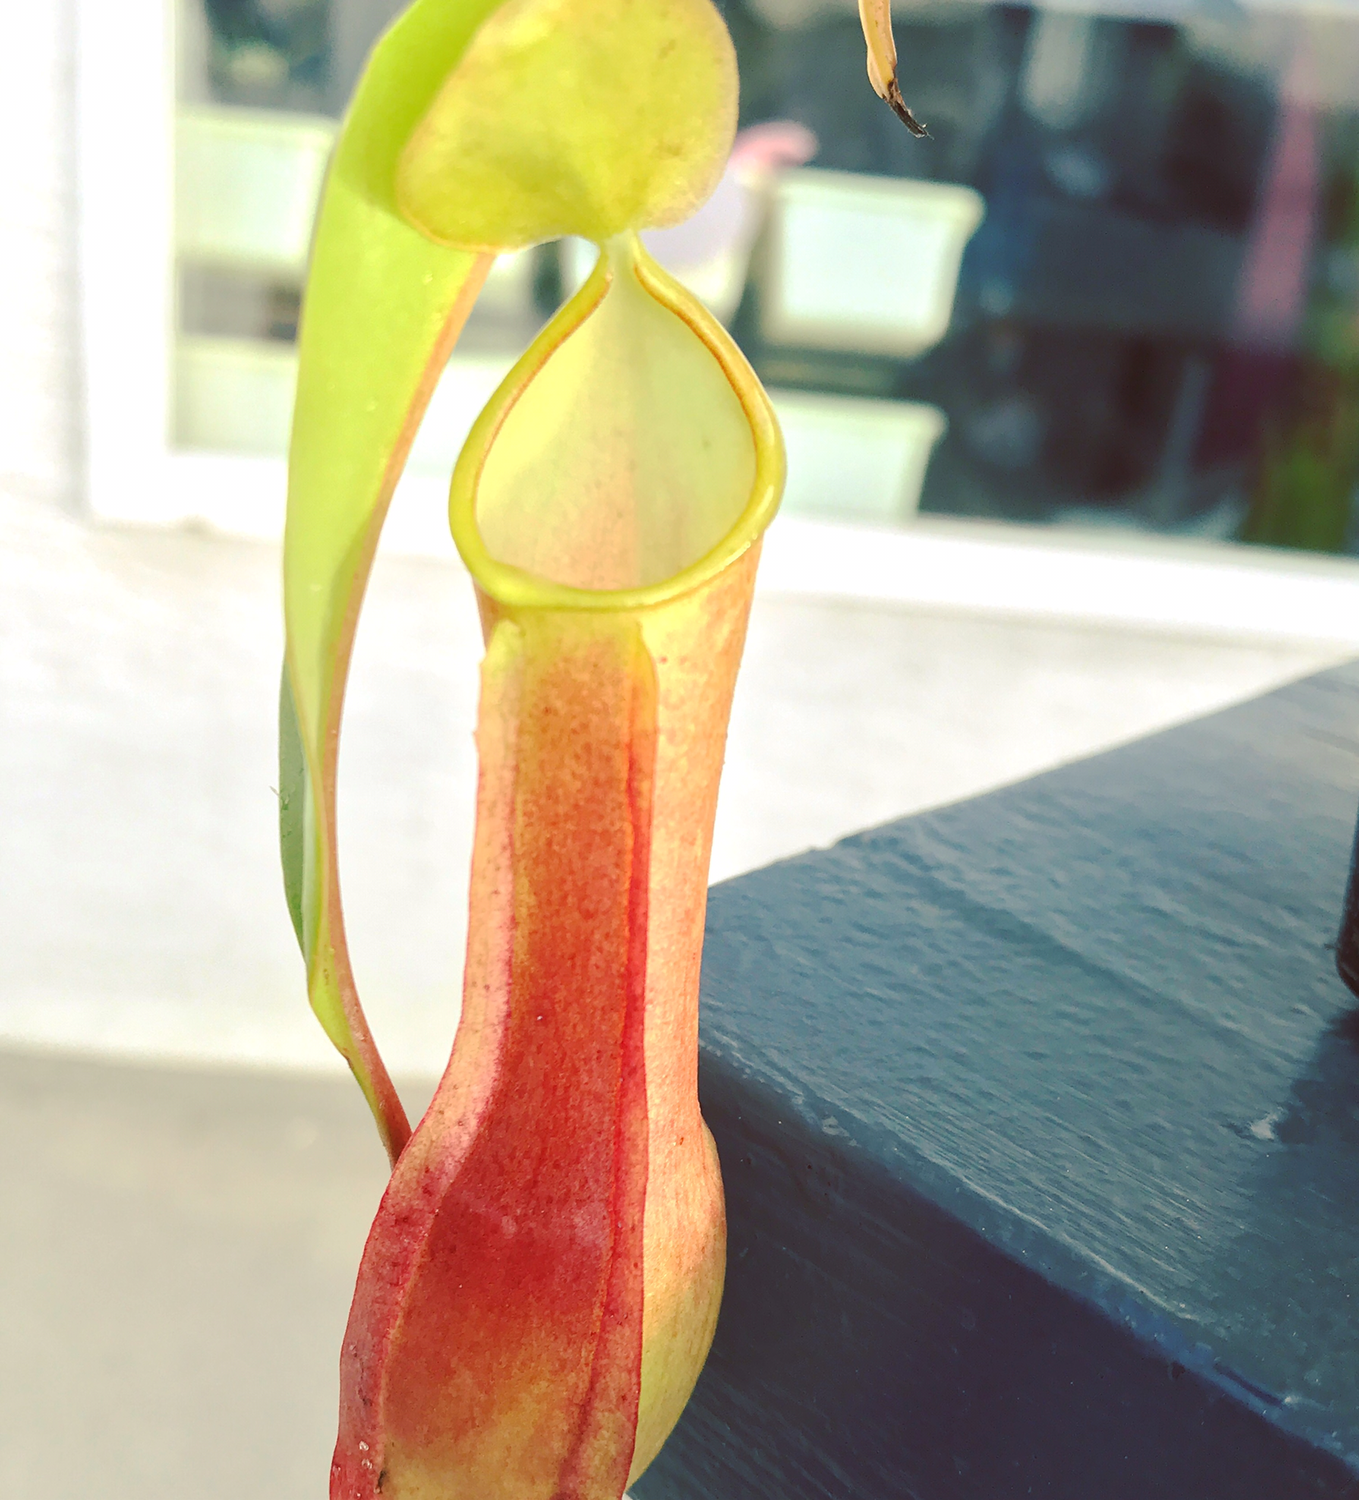 Nepenthes reinwardtiana - Colourful!